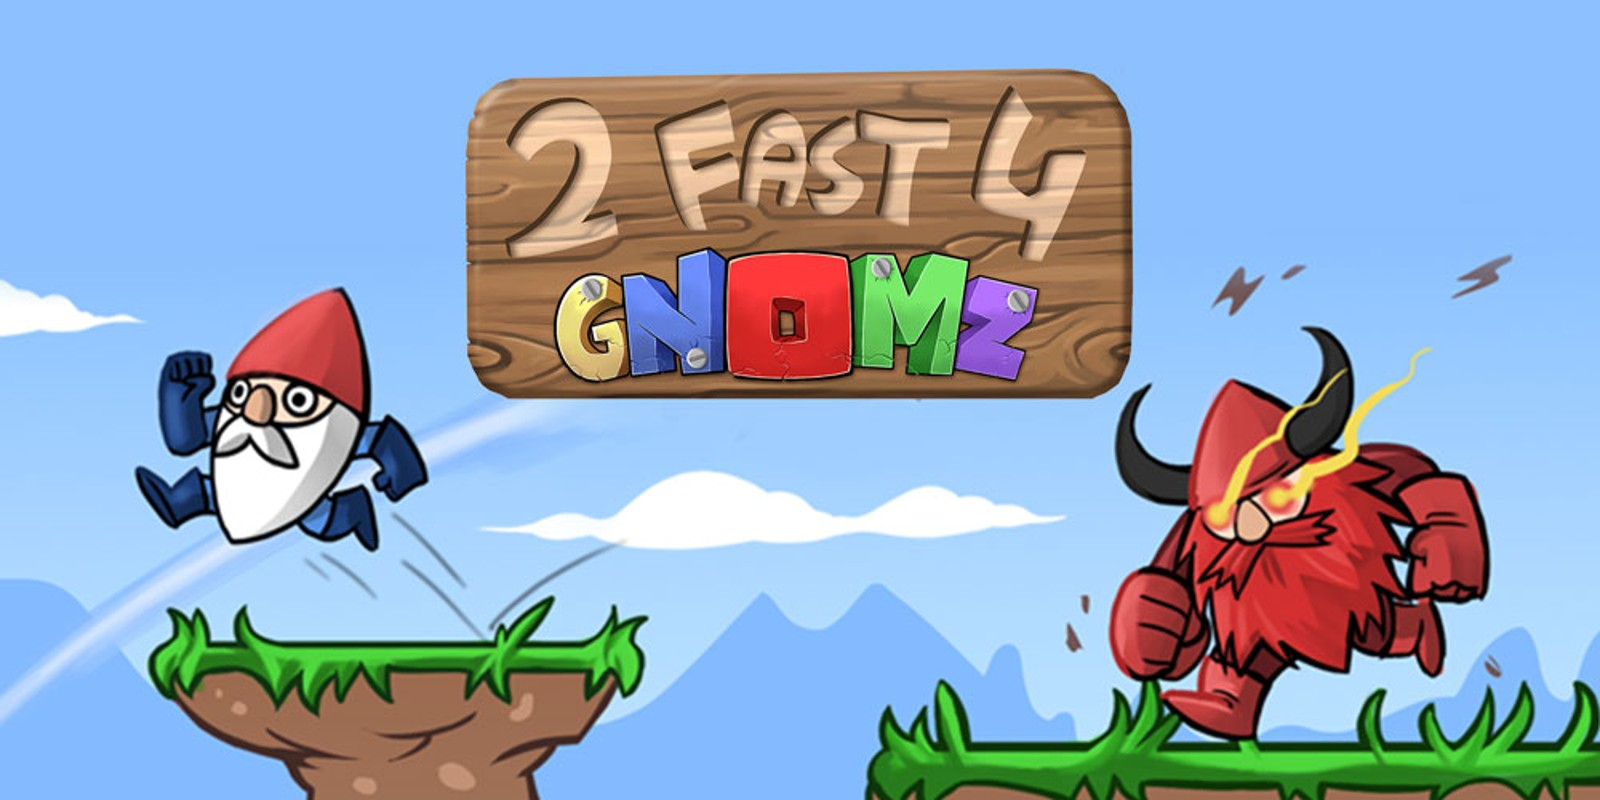 2 Fast 4 Gnomz statistics player count facts